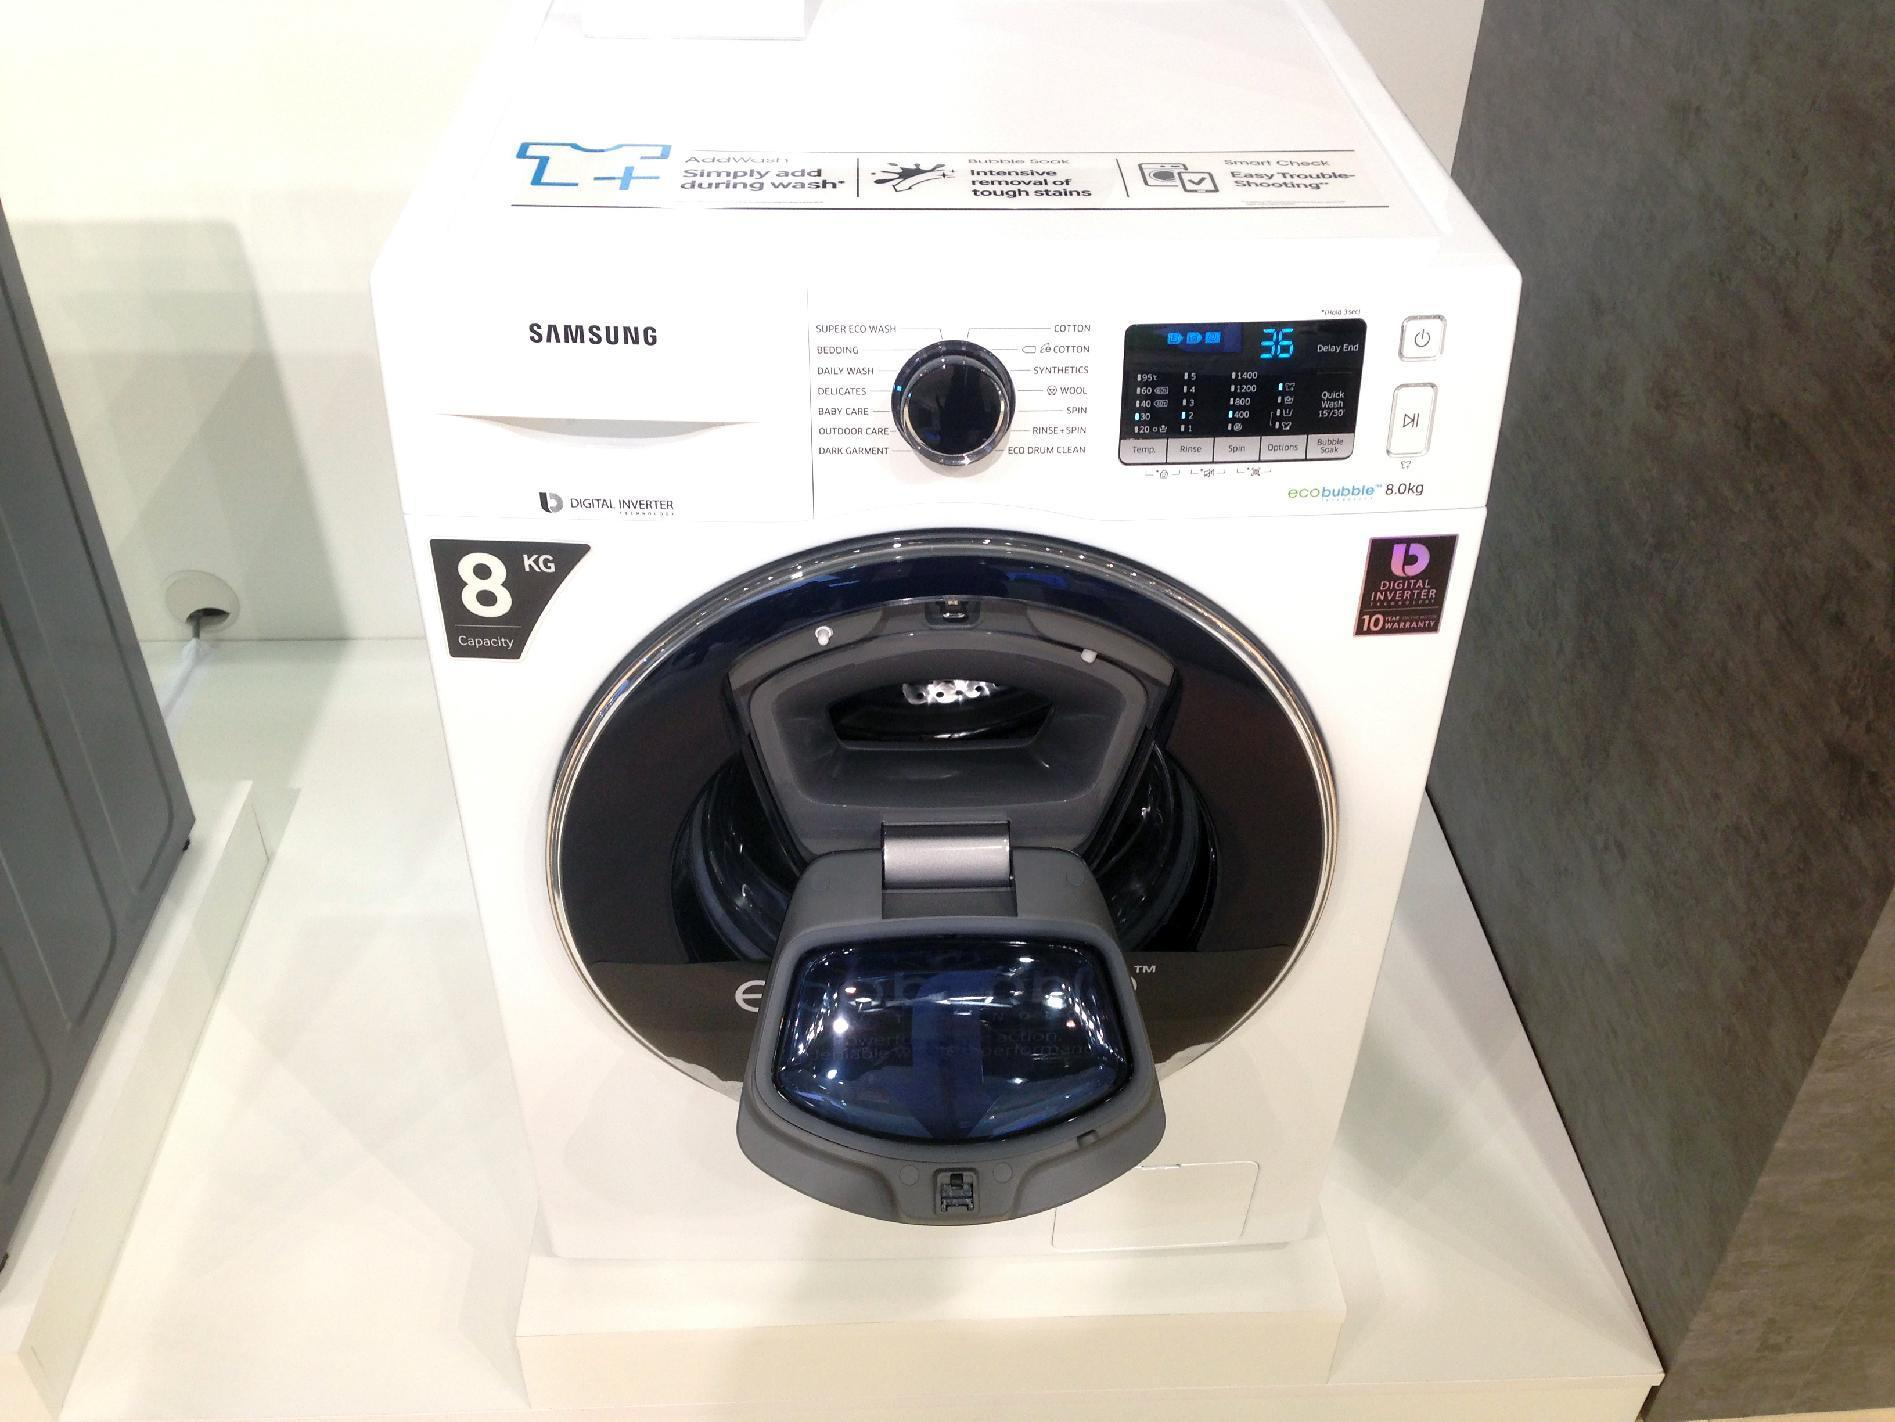 Samsung showcases smart appliances at European Forum